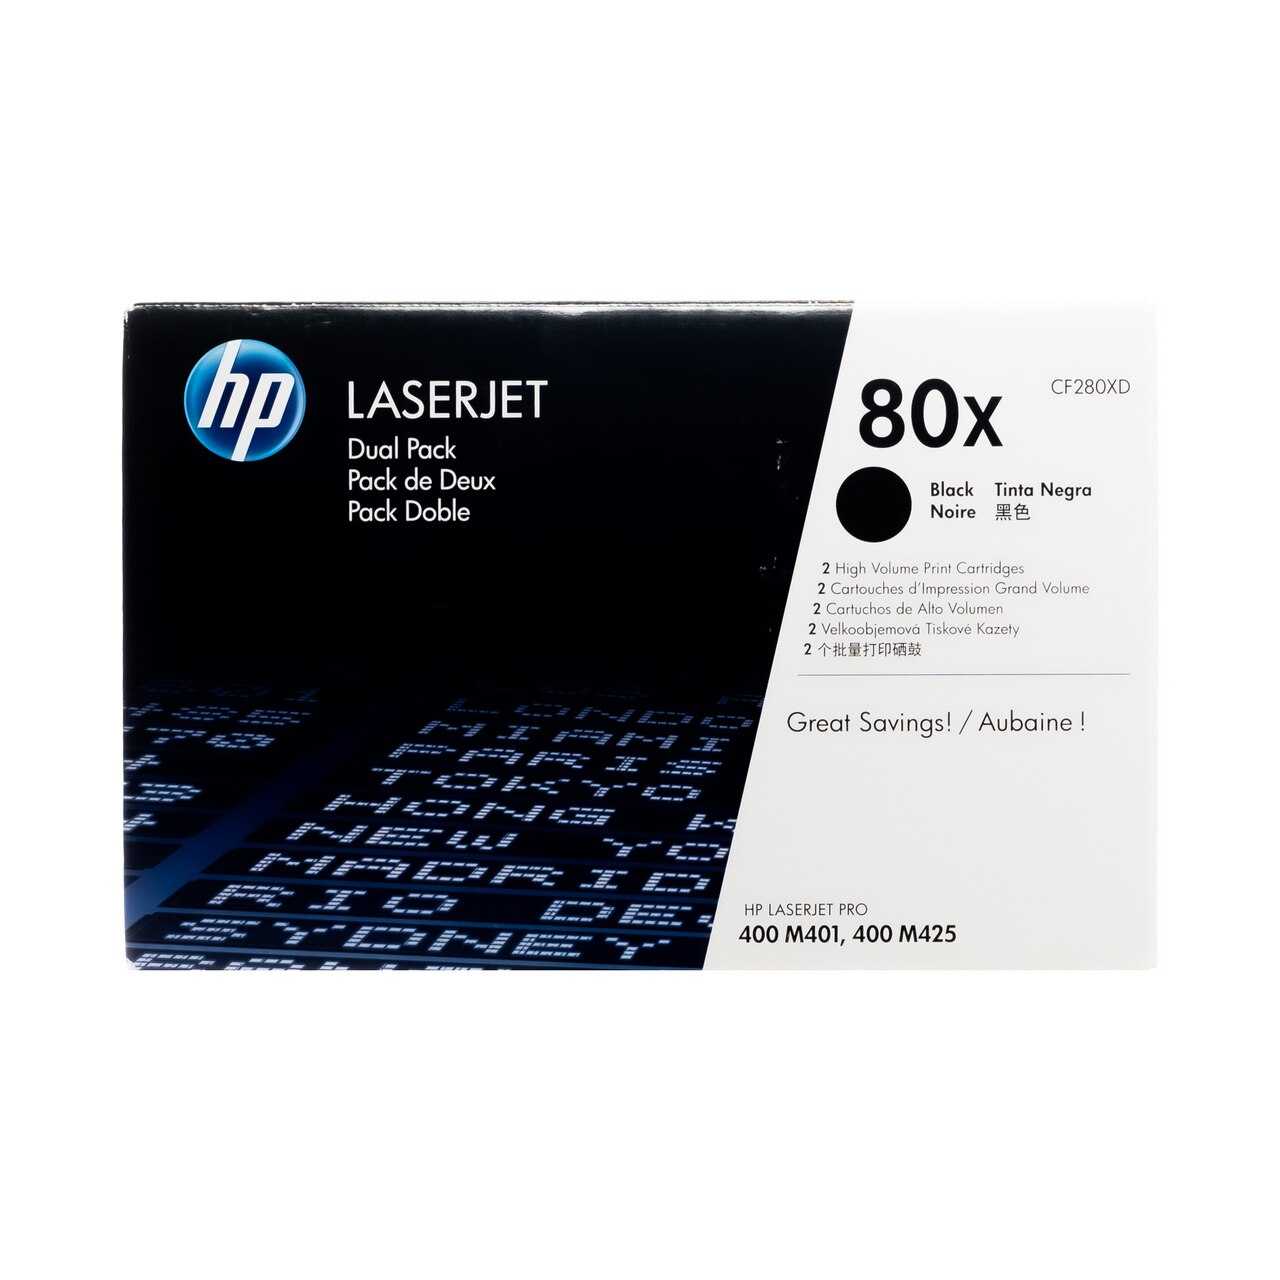 CF280XD SET | HP 80X | Original HP High-Yield LaserJet Toner Cartridges - 2-Pack - Black